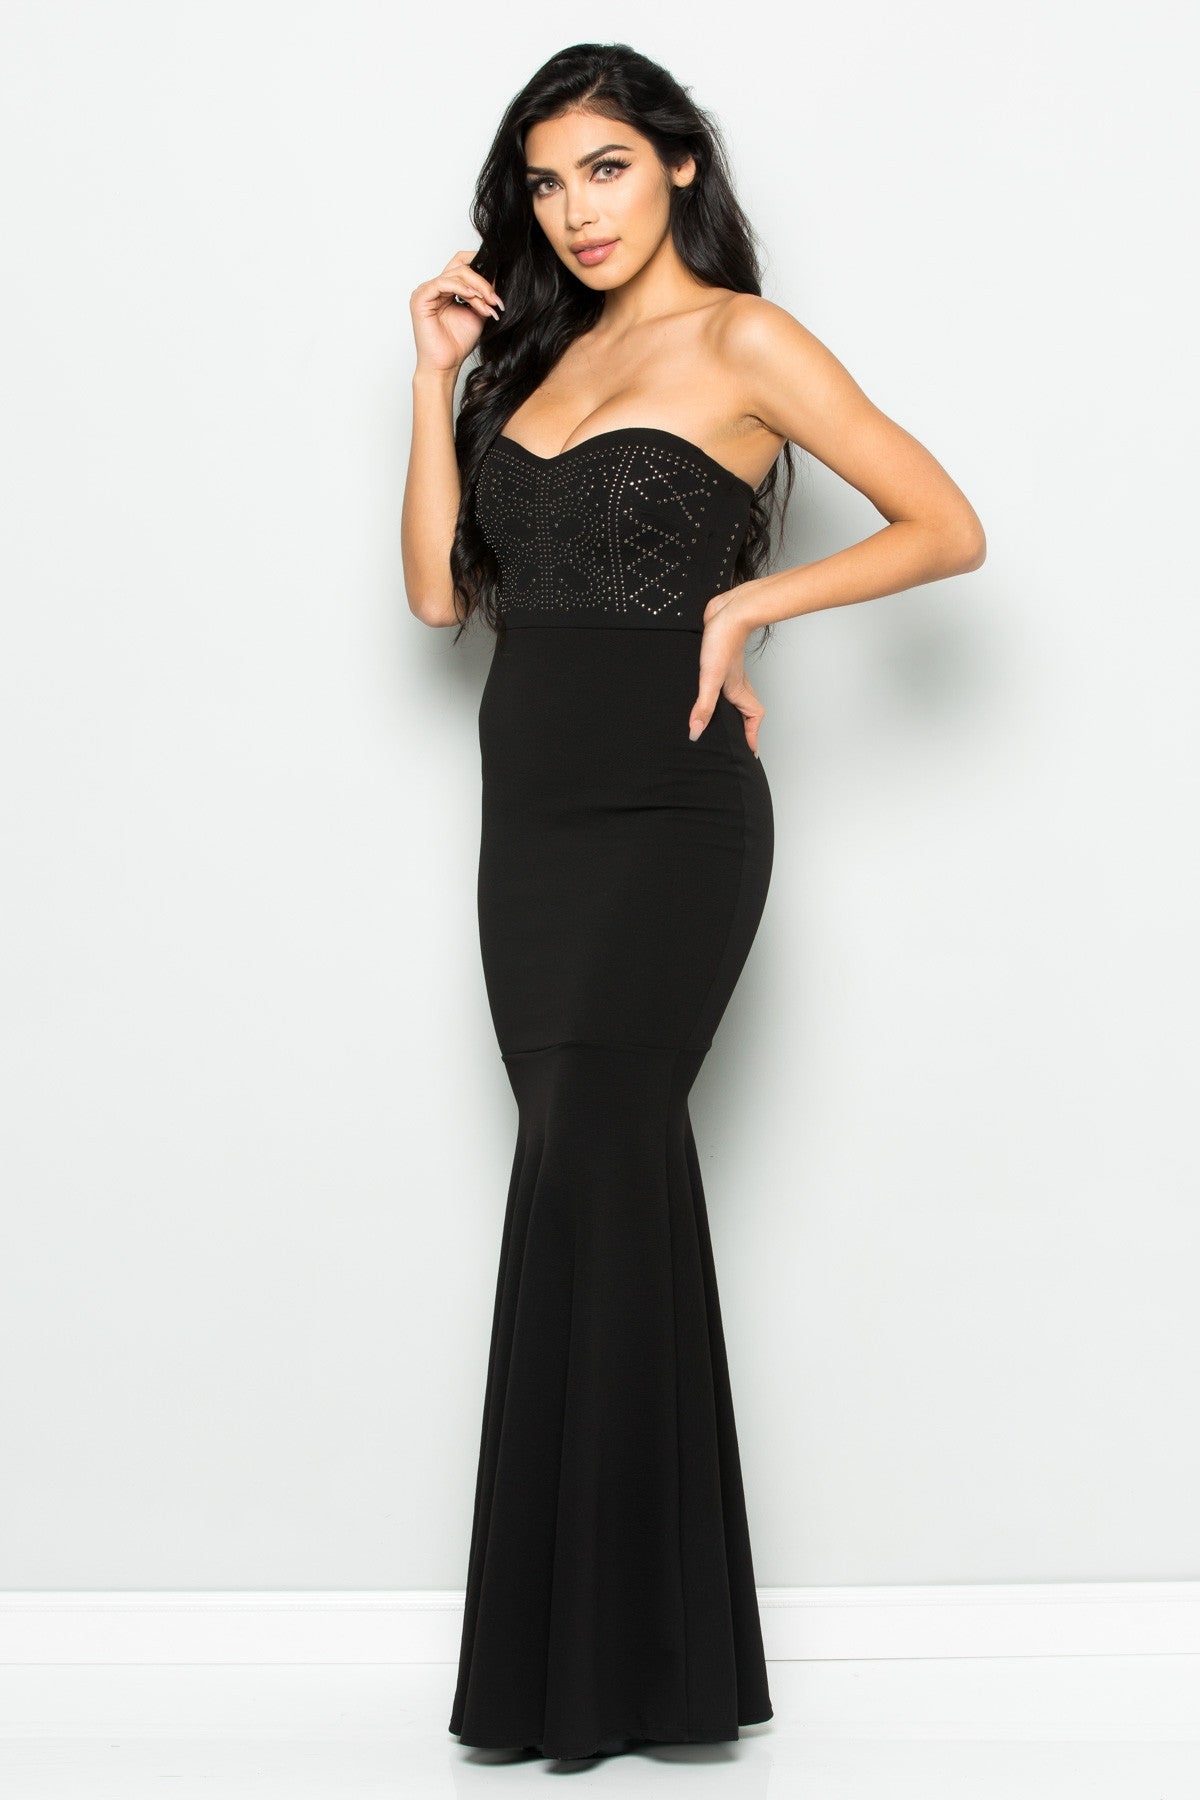 Beaded Sweetheart Mermaid Tail Gown in Black - Dresses - My Yuccie - 1